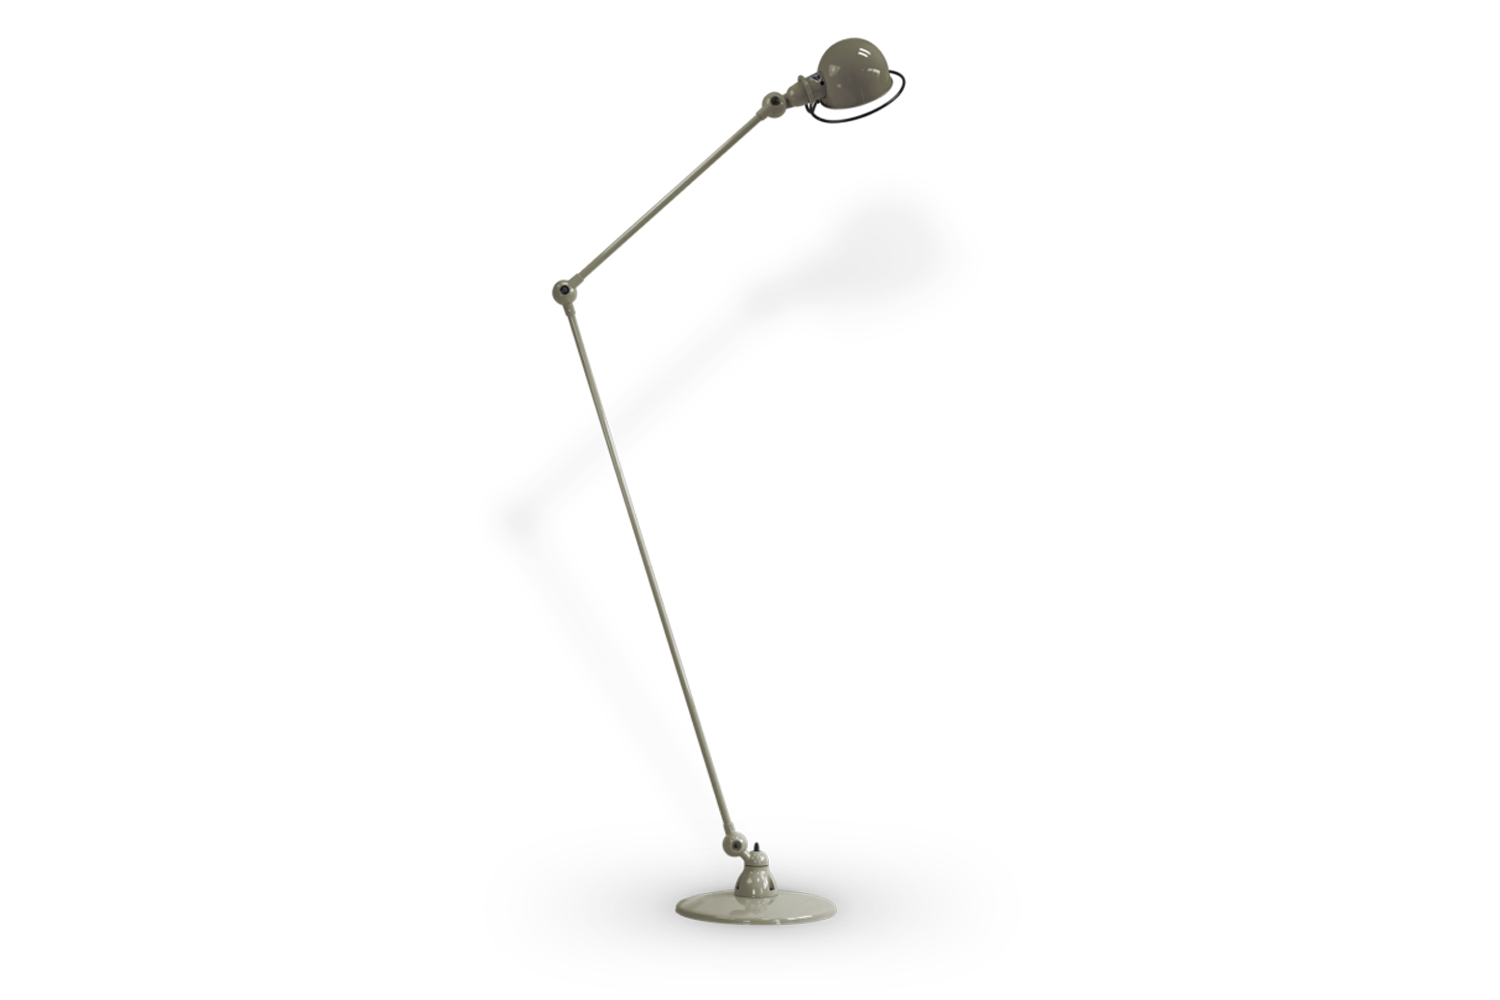 the jielde loft floor lamp d\1\260 comes in \24 colors/finishes (shown in khaki 11